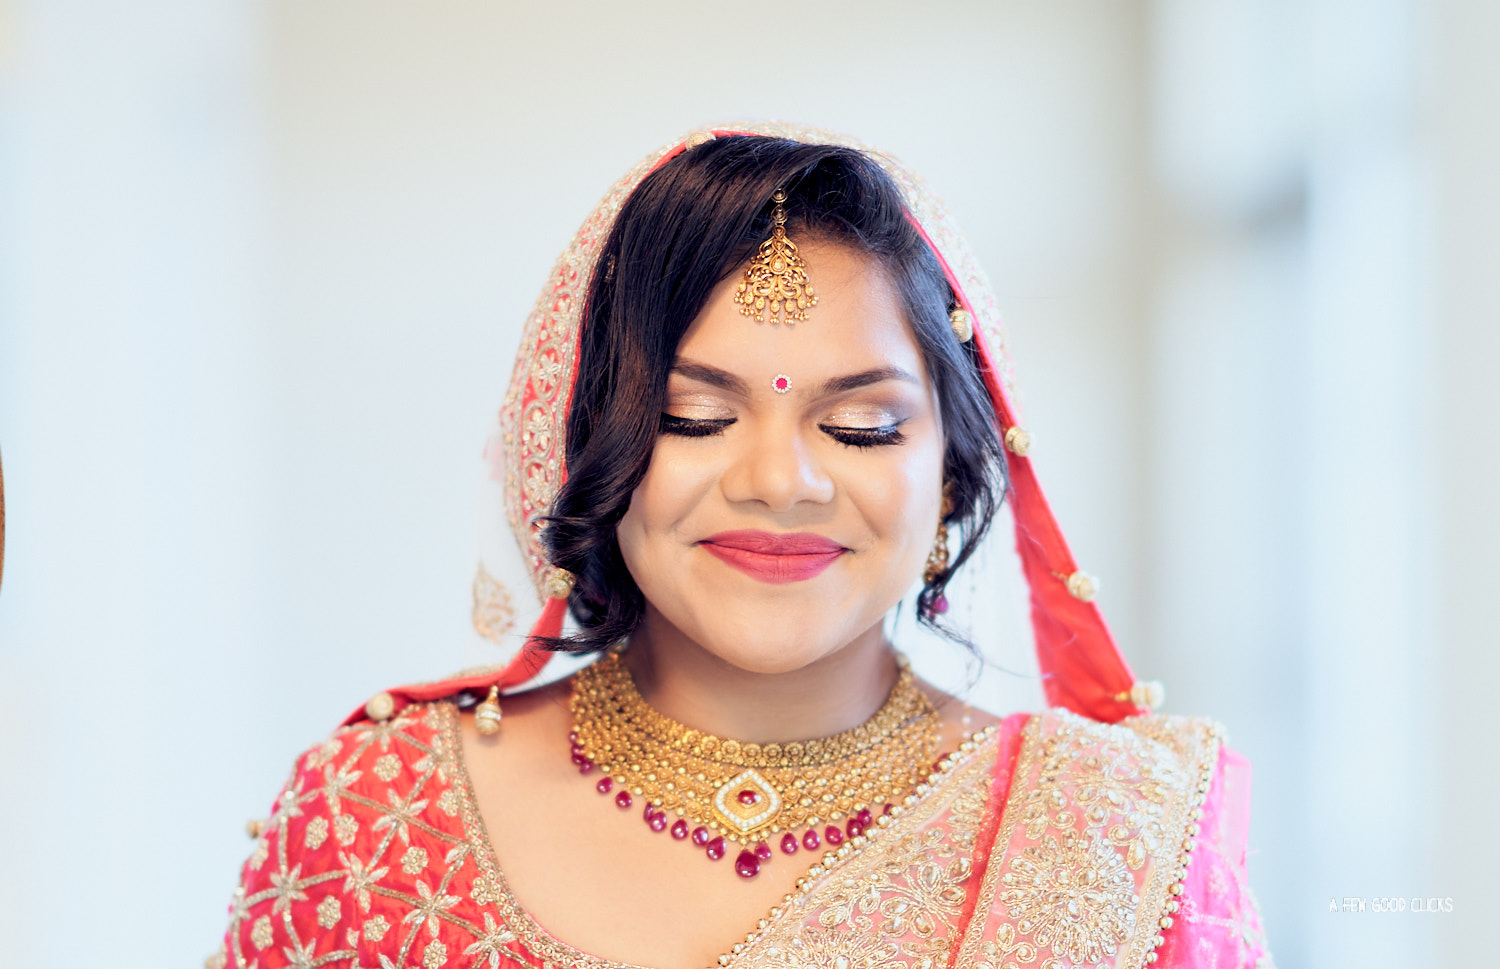 Bridal Portraits during Indian Wedding in Sunnyvale Temple, California.